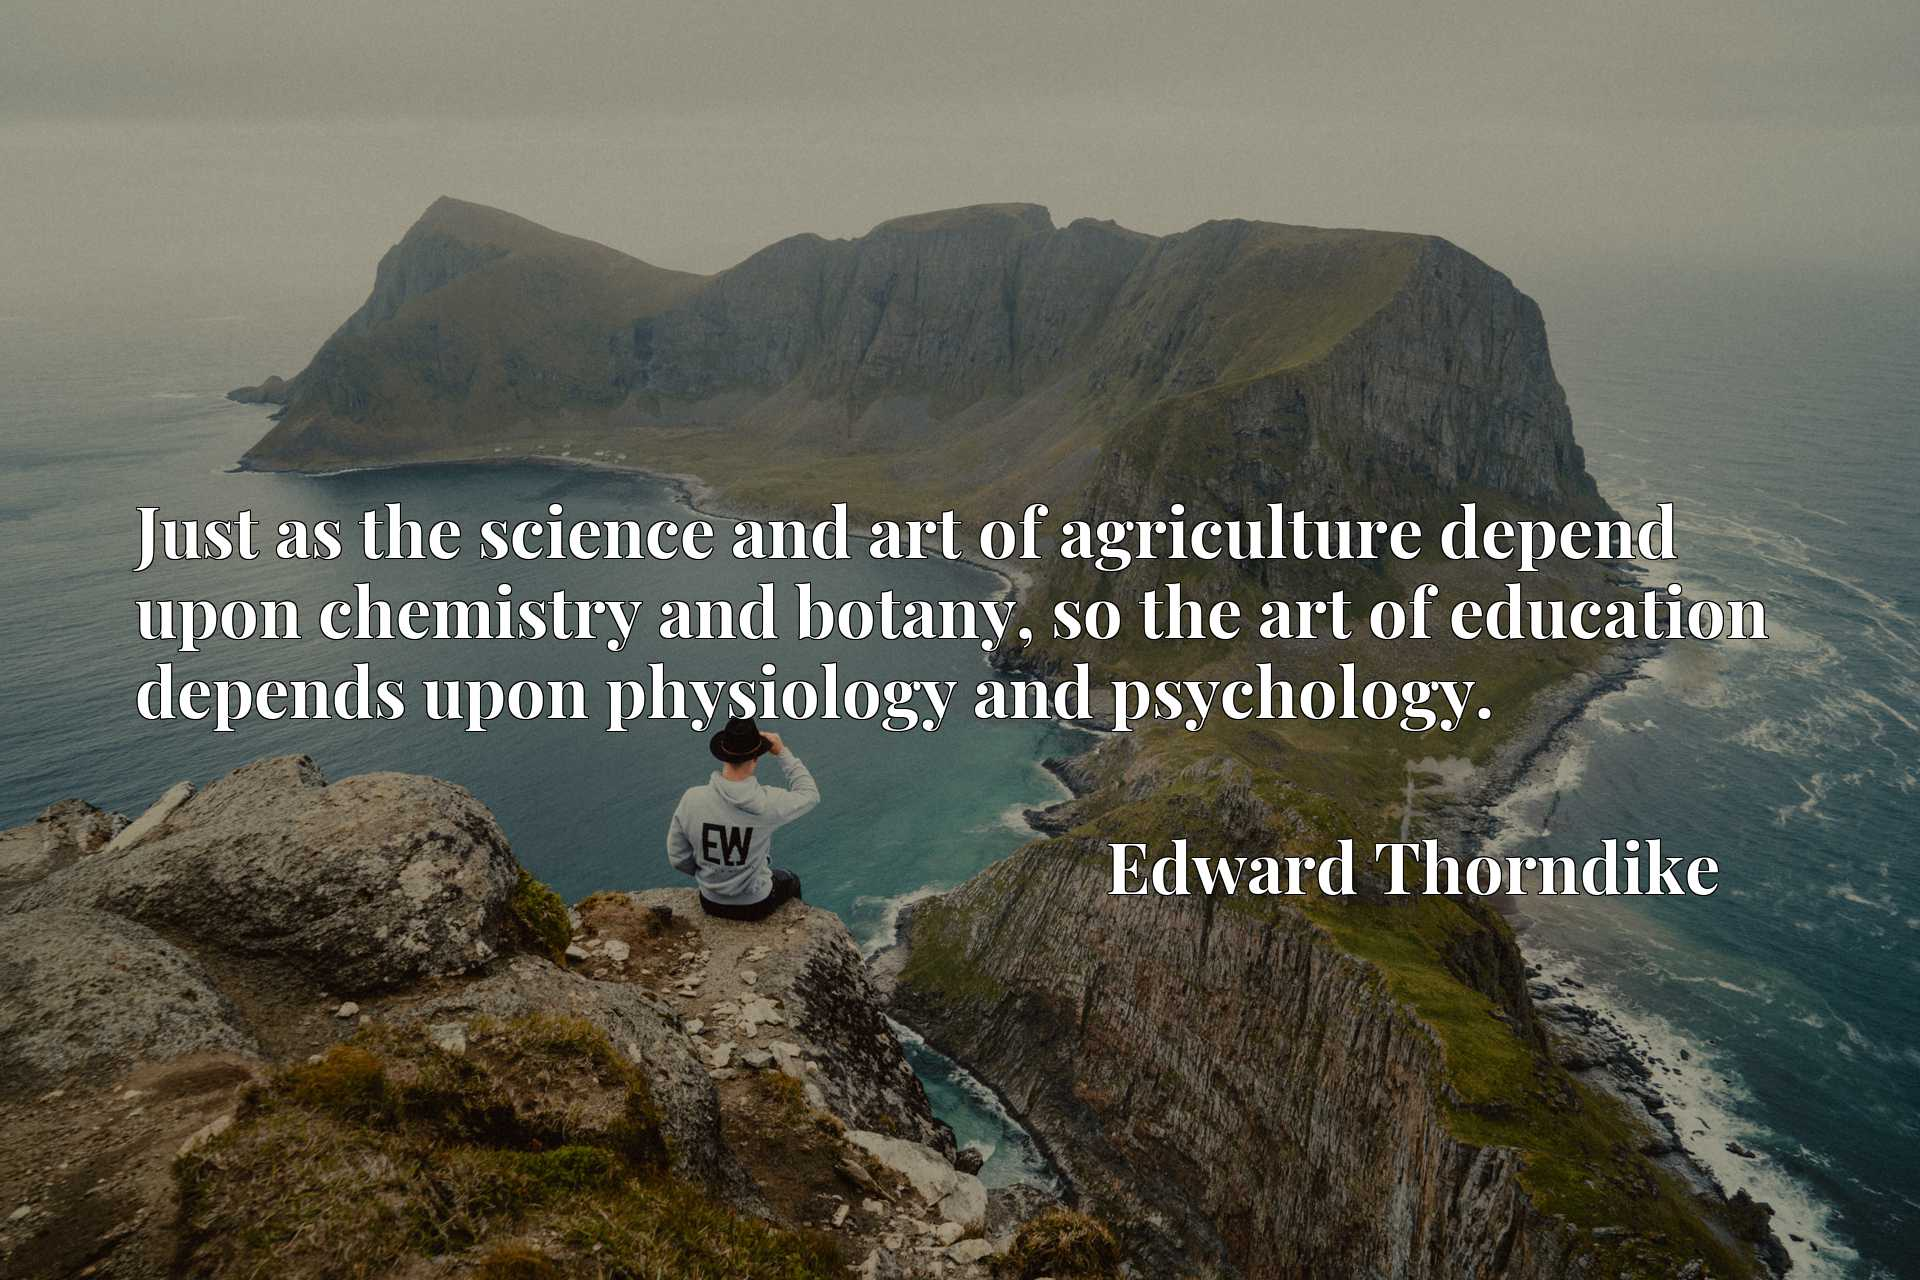 Just as the science and art of agriculture depend upon chemistry and botany, so the art of education depends upon physiology and psychology.